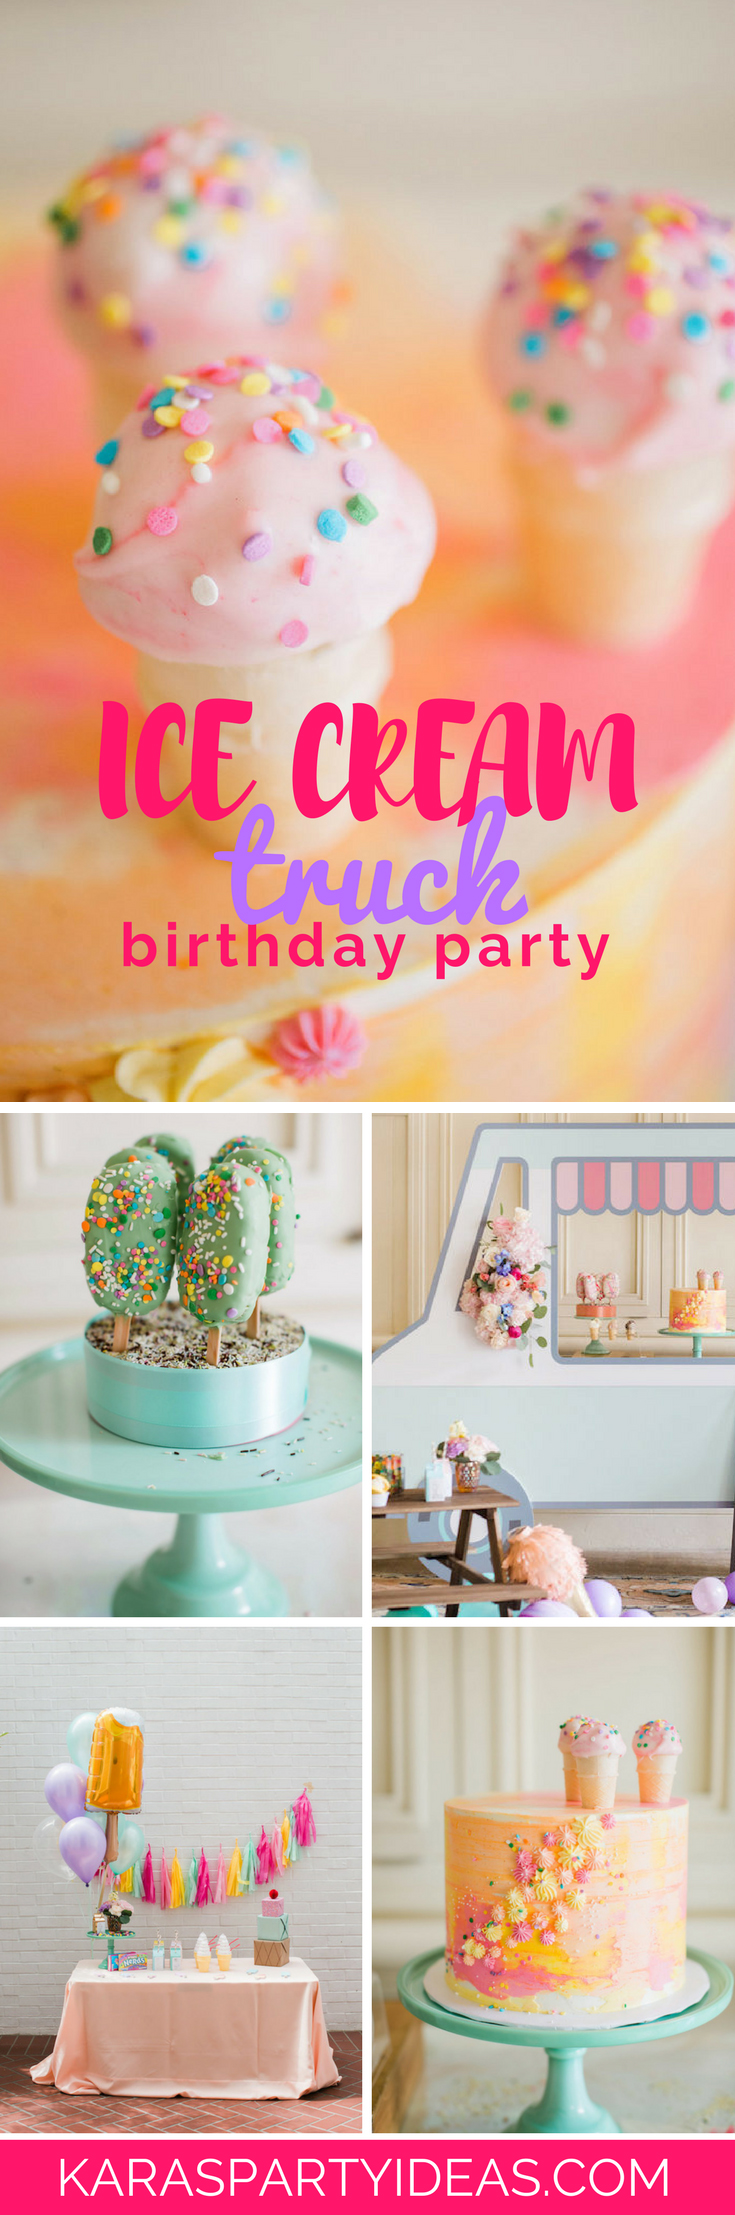 Kara S Party Ideas Ice Cream Truck Birthday Party Kara S